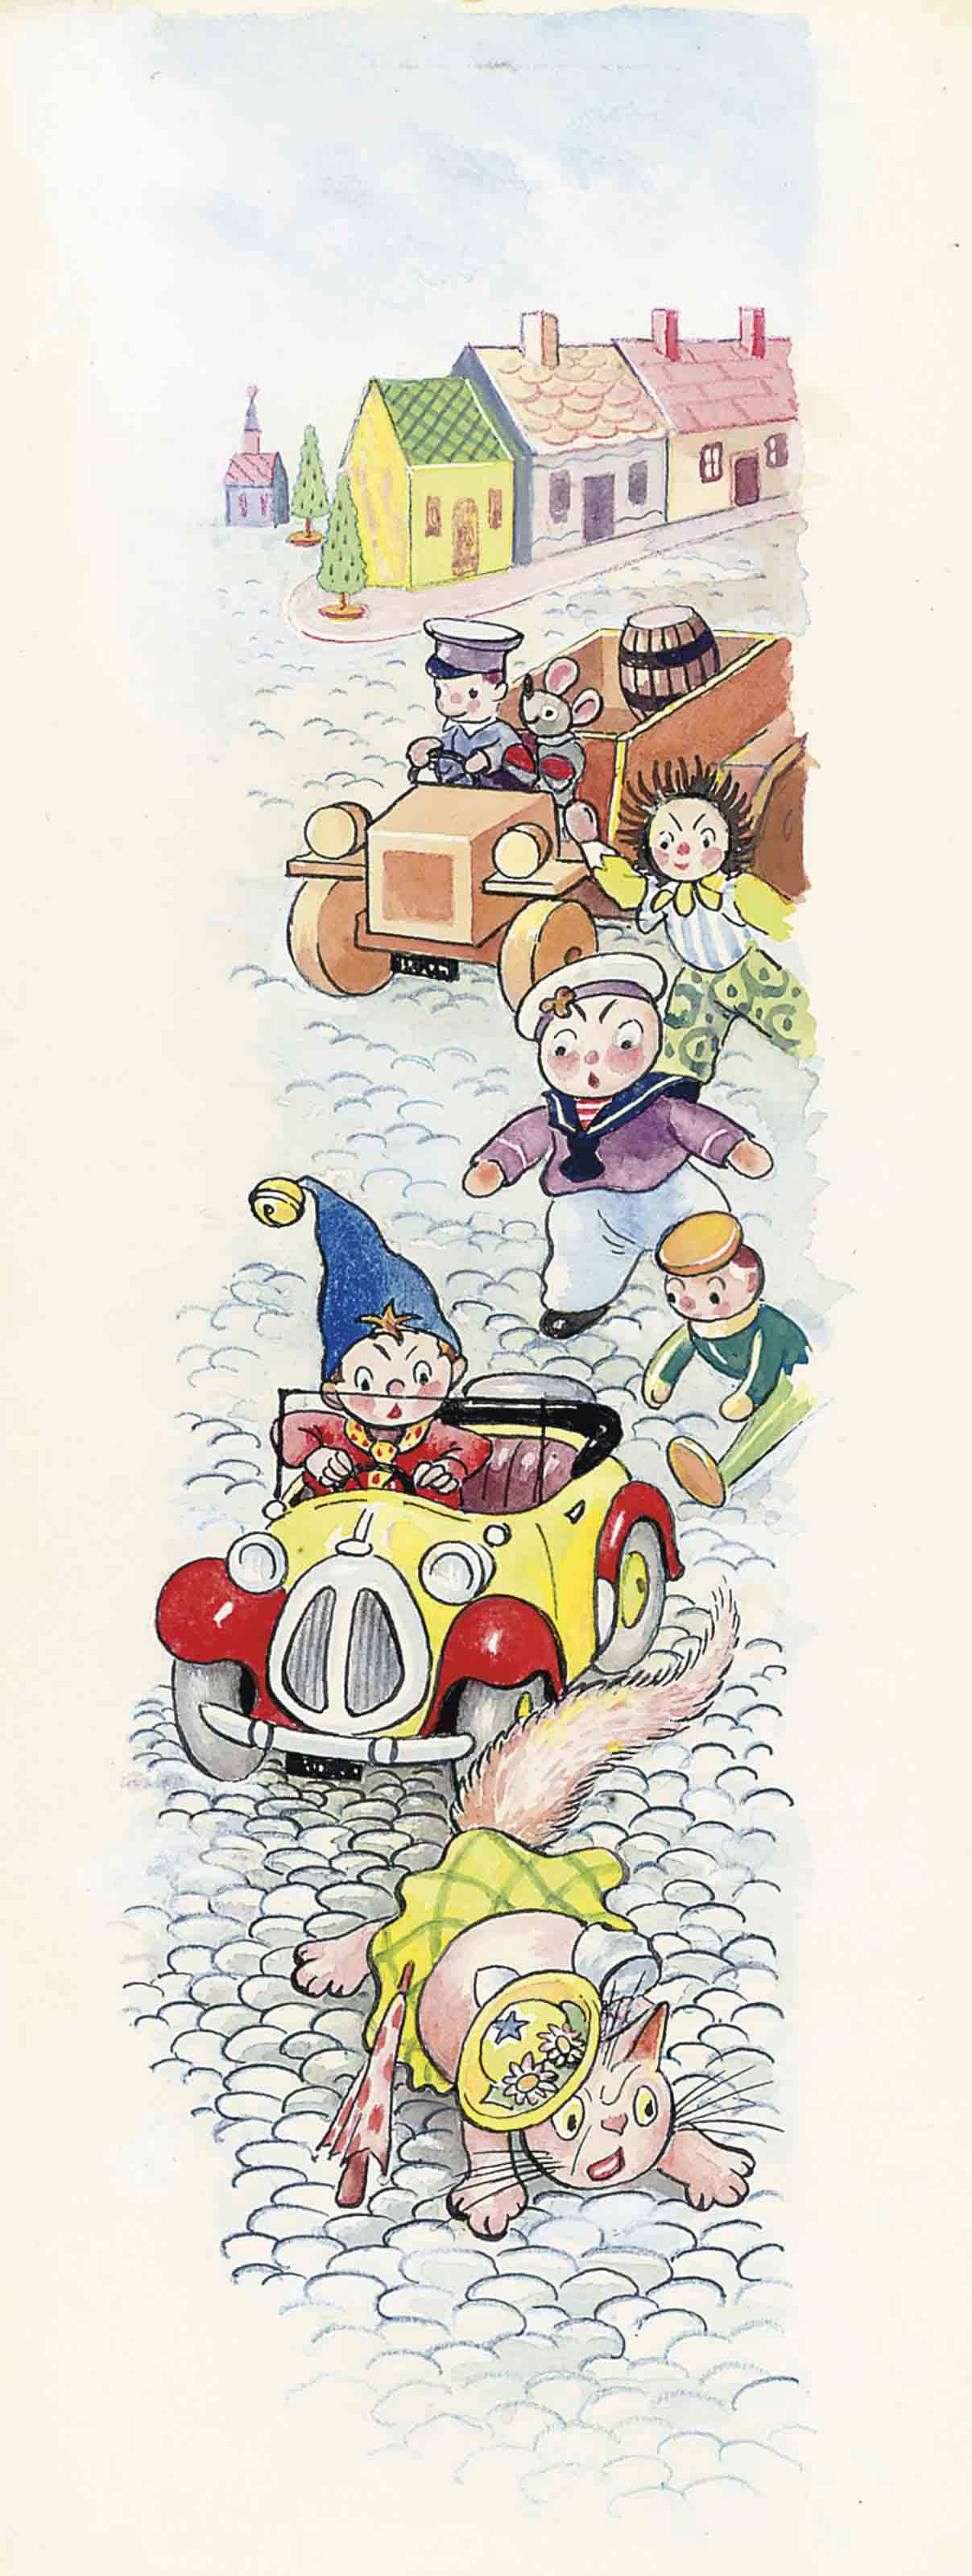 The toy-cat falling out of Noddy's car